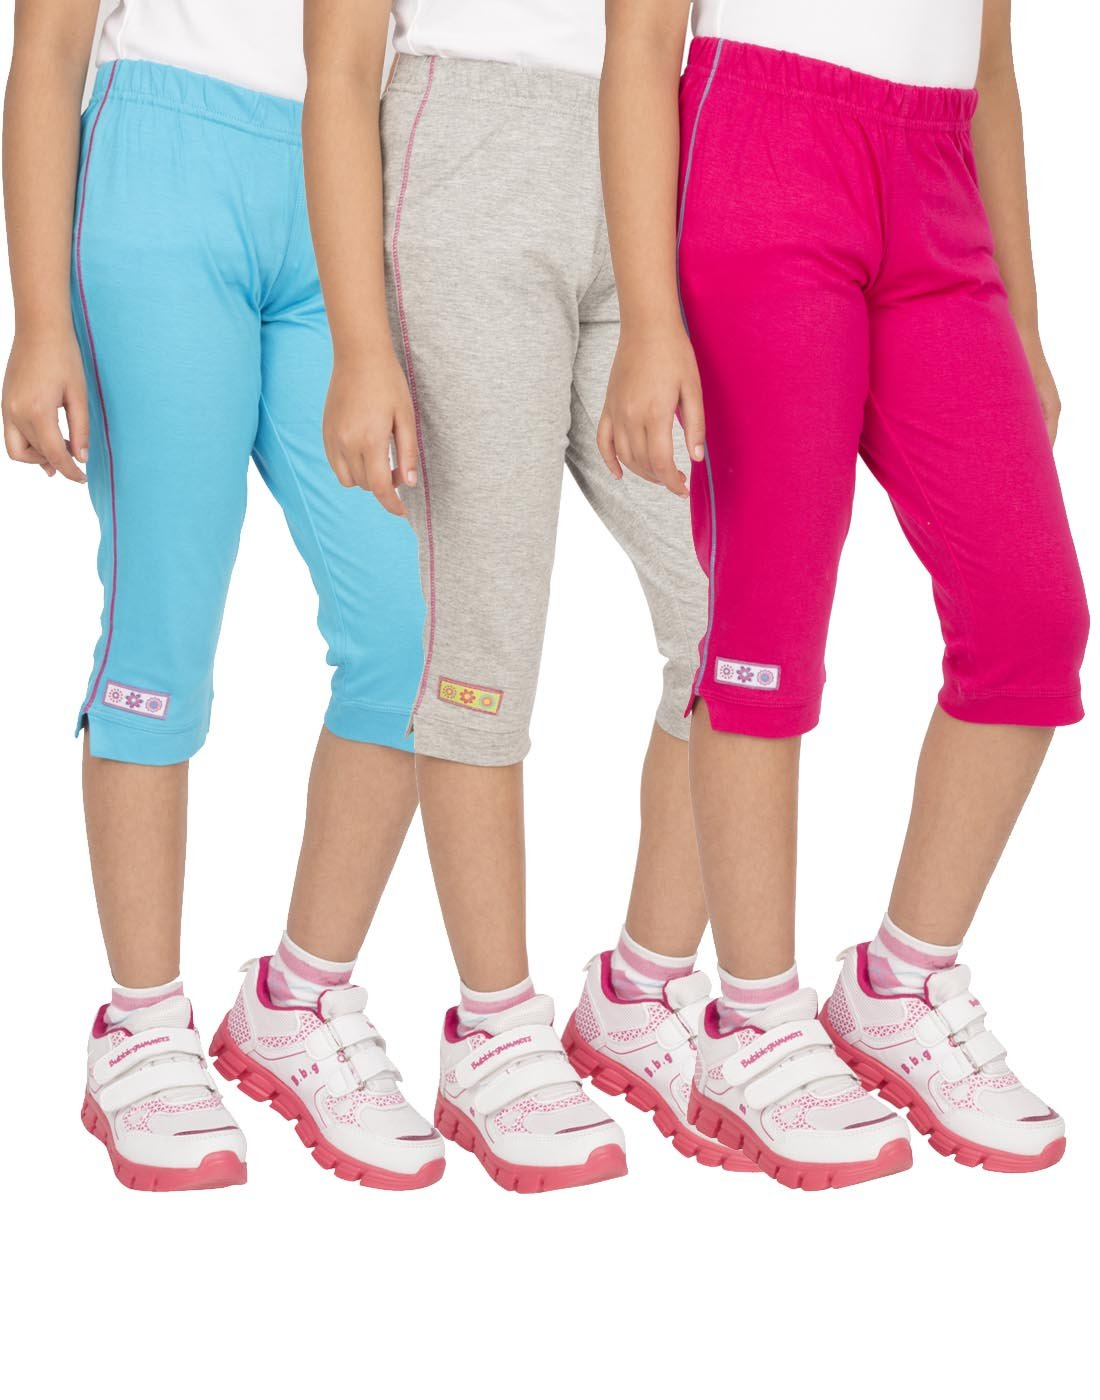 OCEAN RACE Girls attarctive Colors Cotton Capris(3/4 Th Pant)-Pack of 3 product image